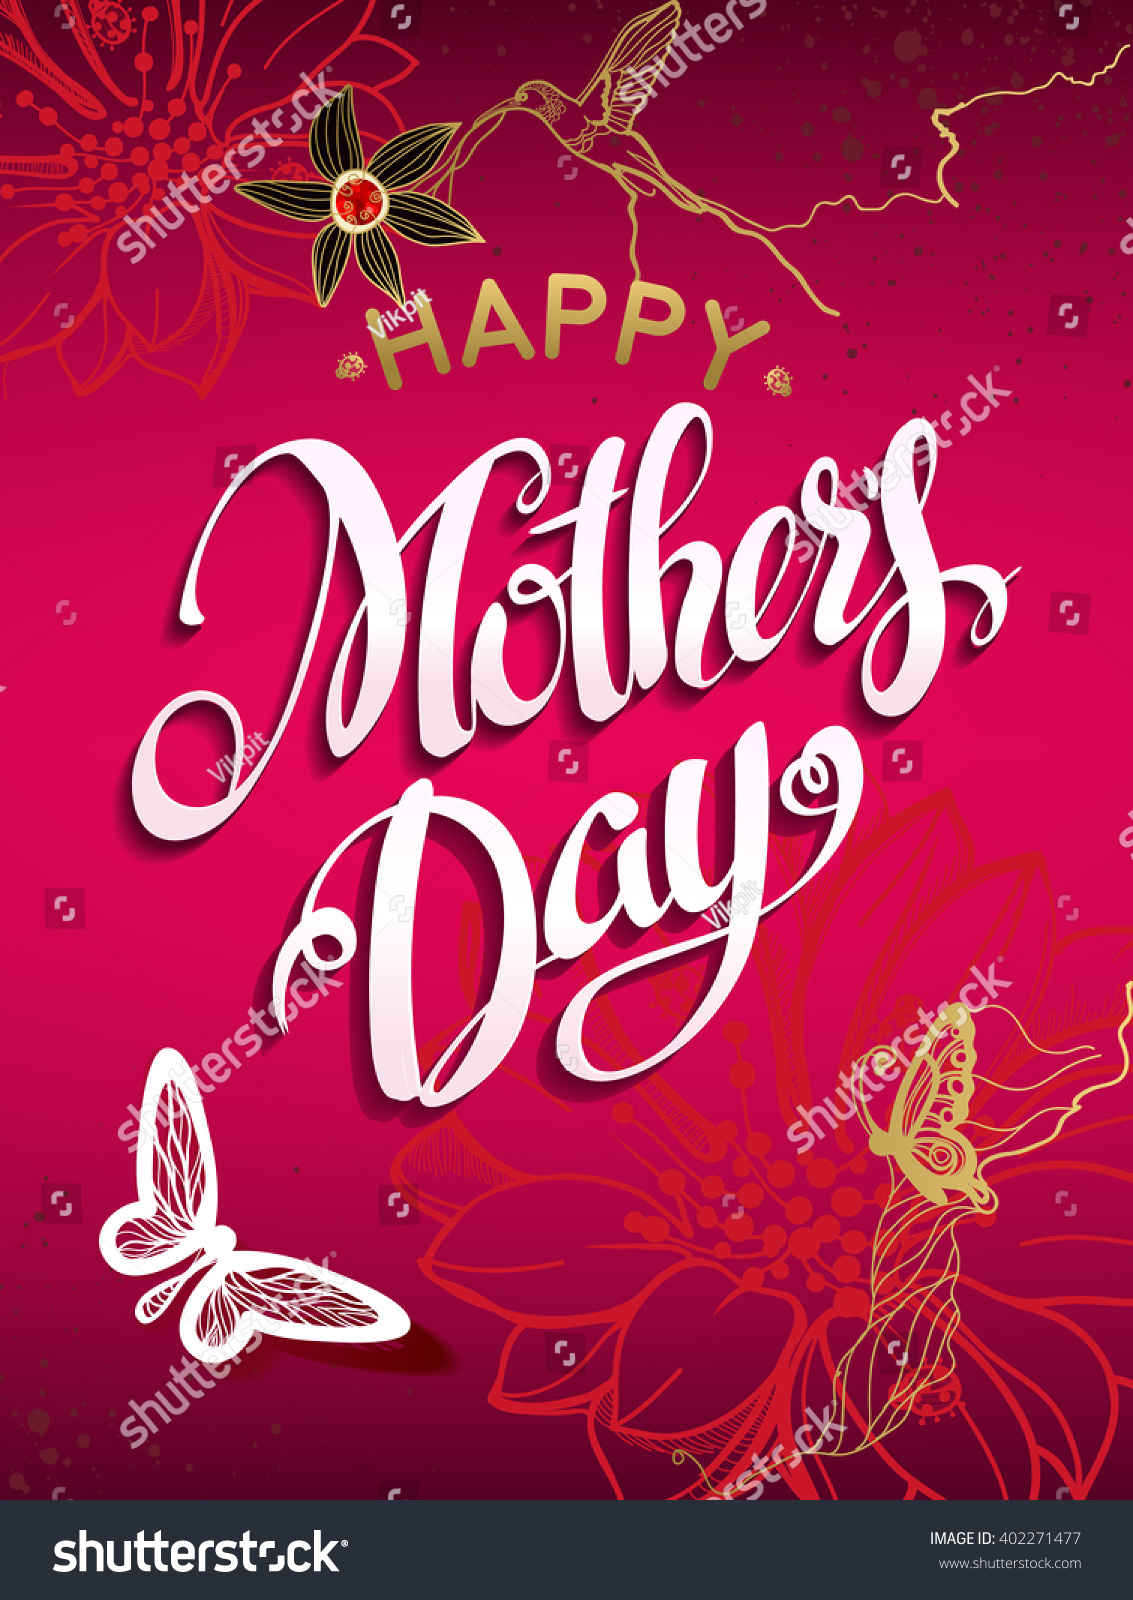 Happy Mothers Day Letteringtypographical Design Isolate Stock Vector